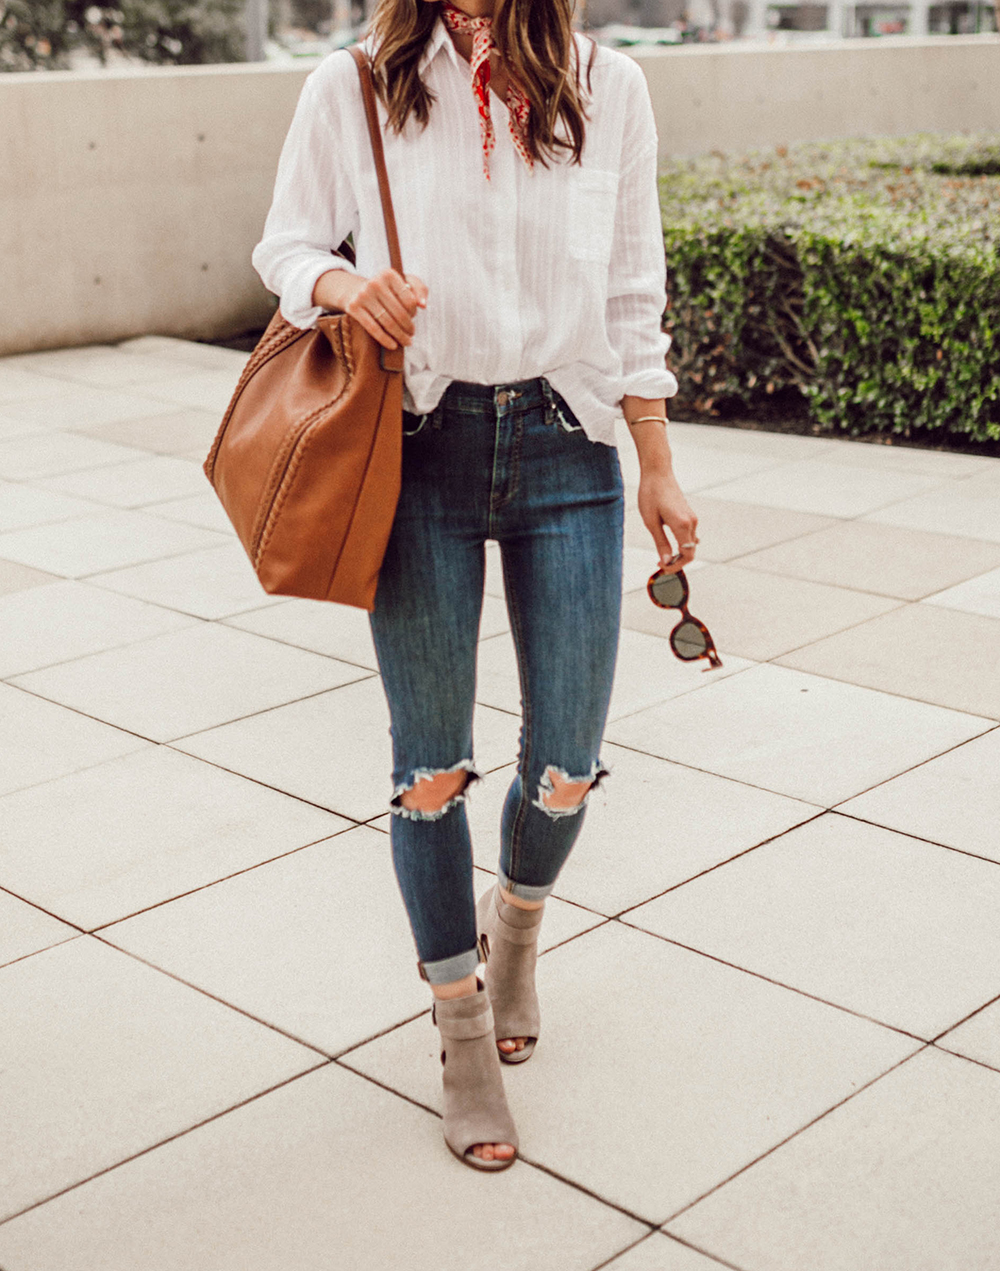 livvyland-blog-olivia-watson-sole-society-spring-transition-shoes-outfit-idea-6